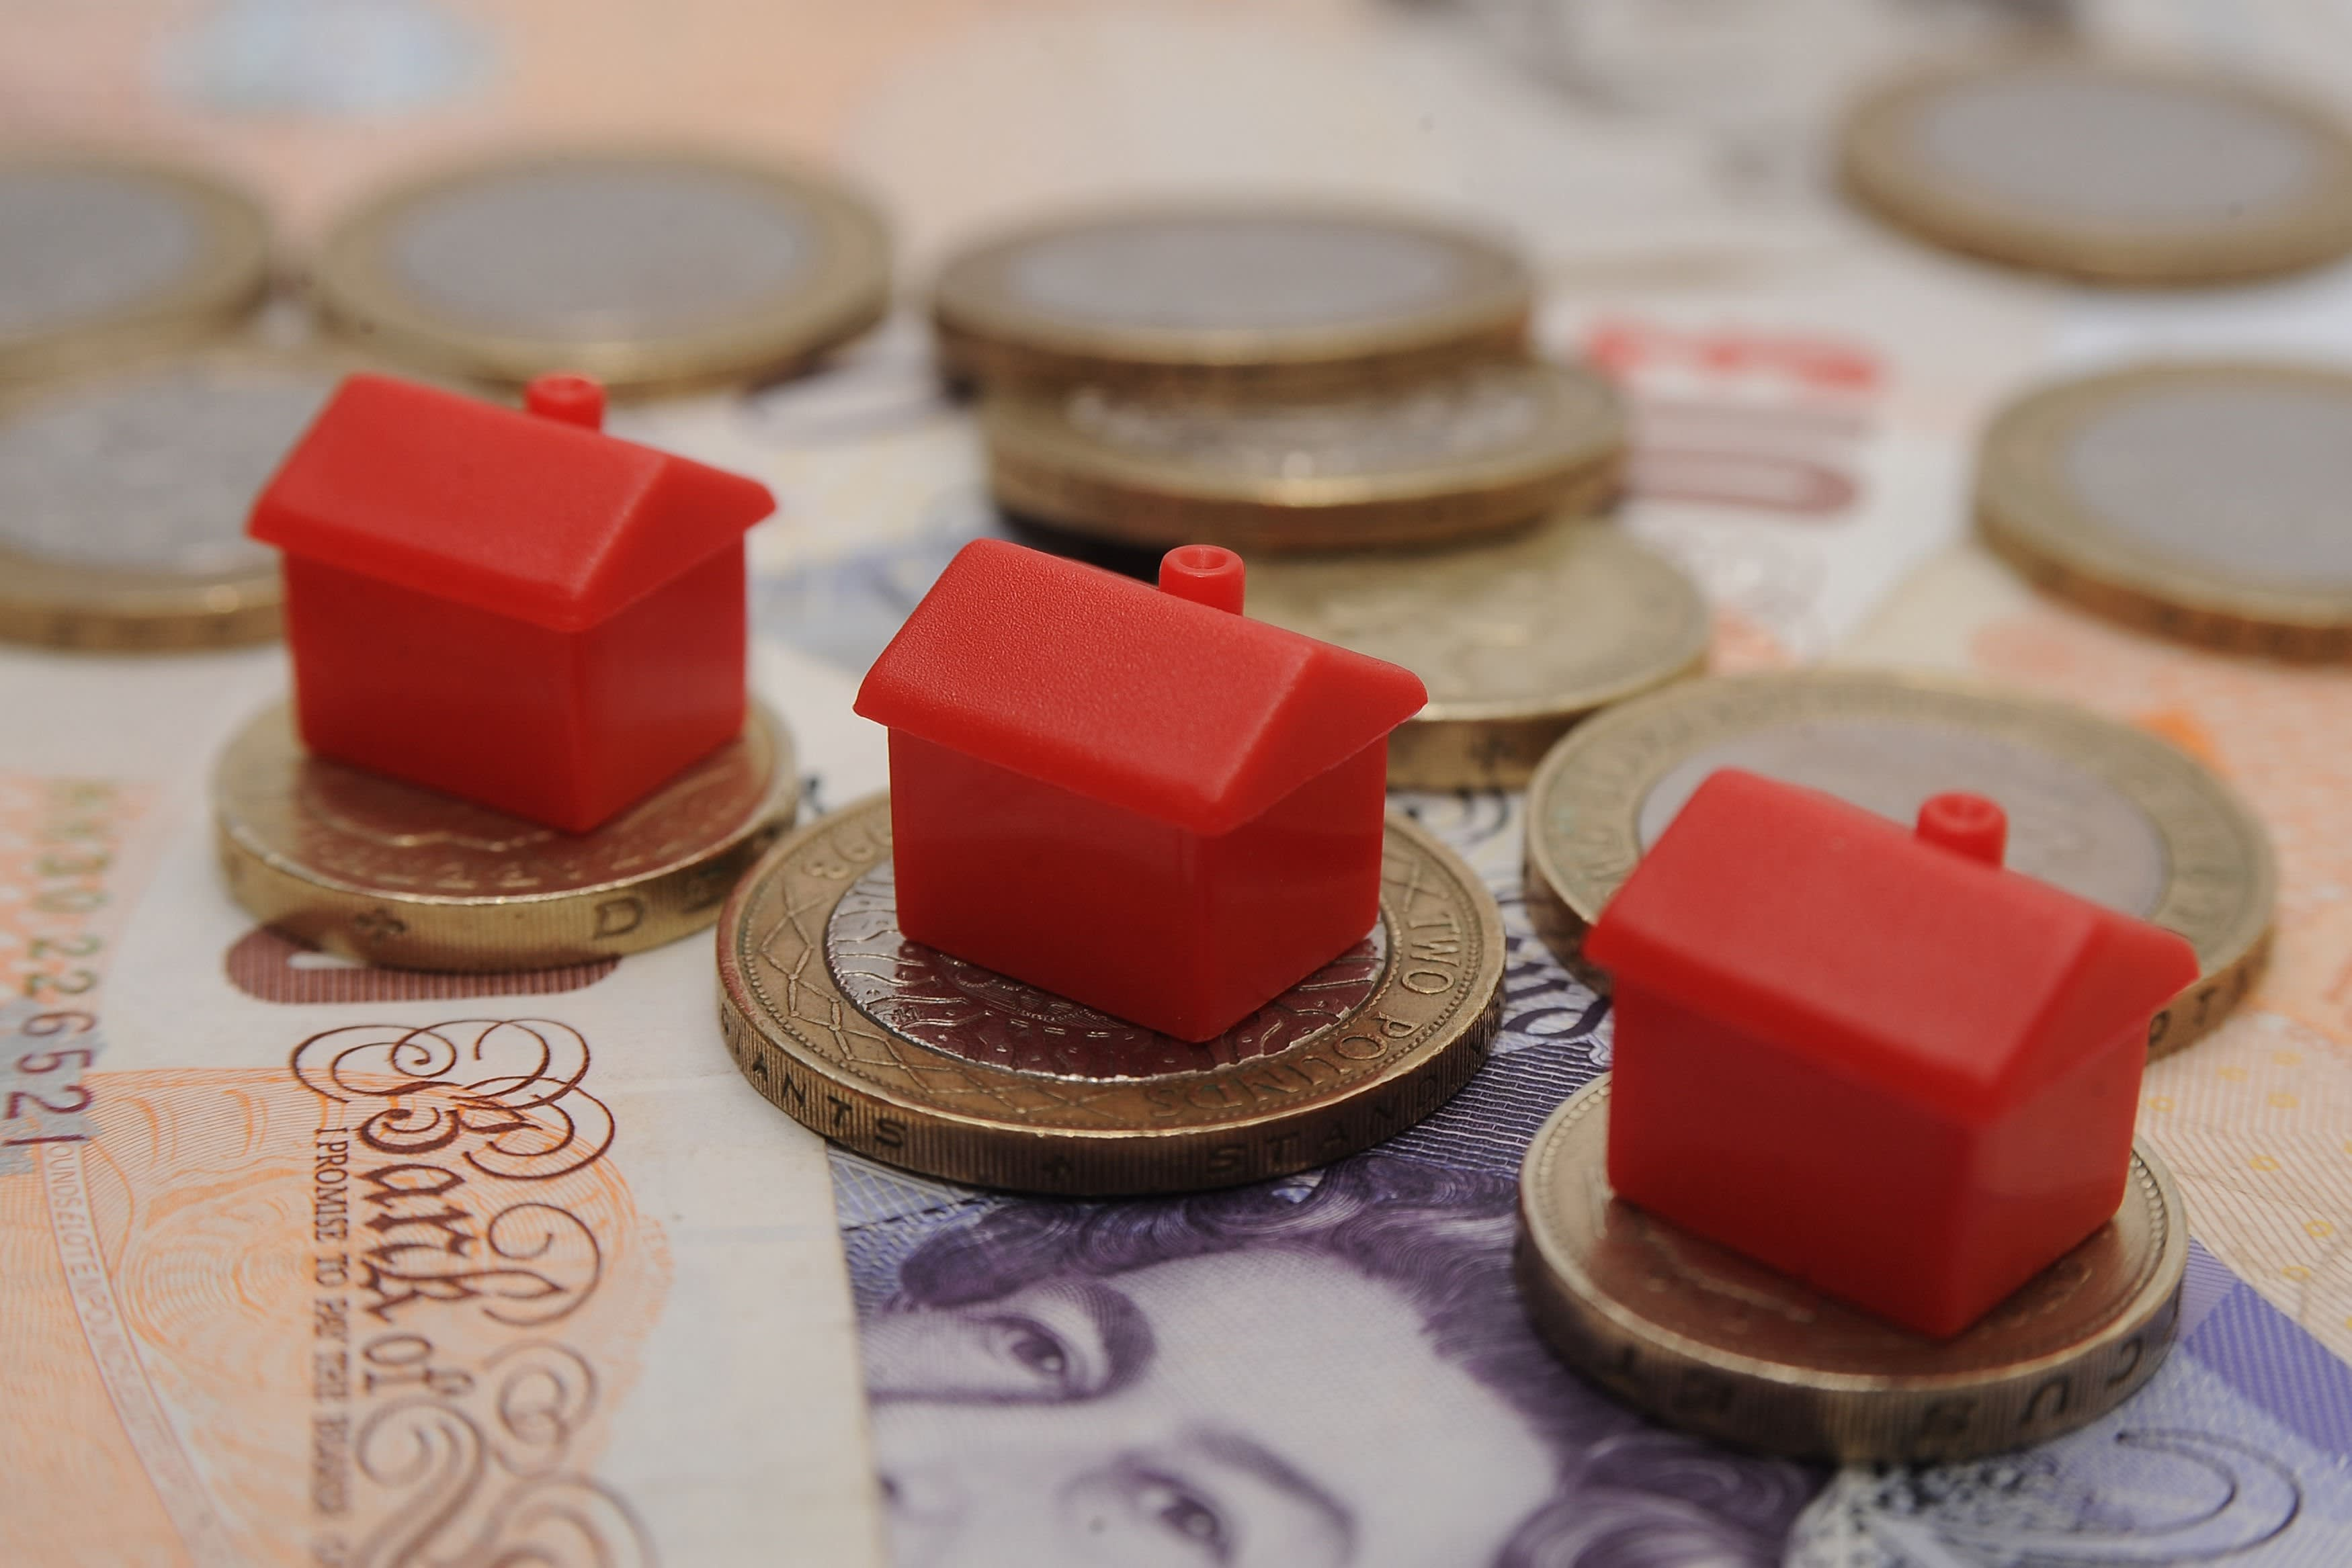 Rise in over-55s weighing property wealth for care funding